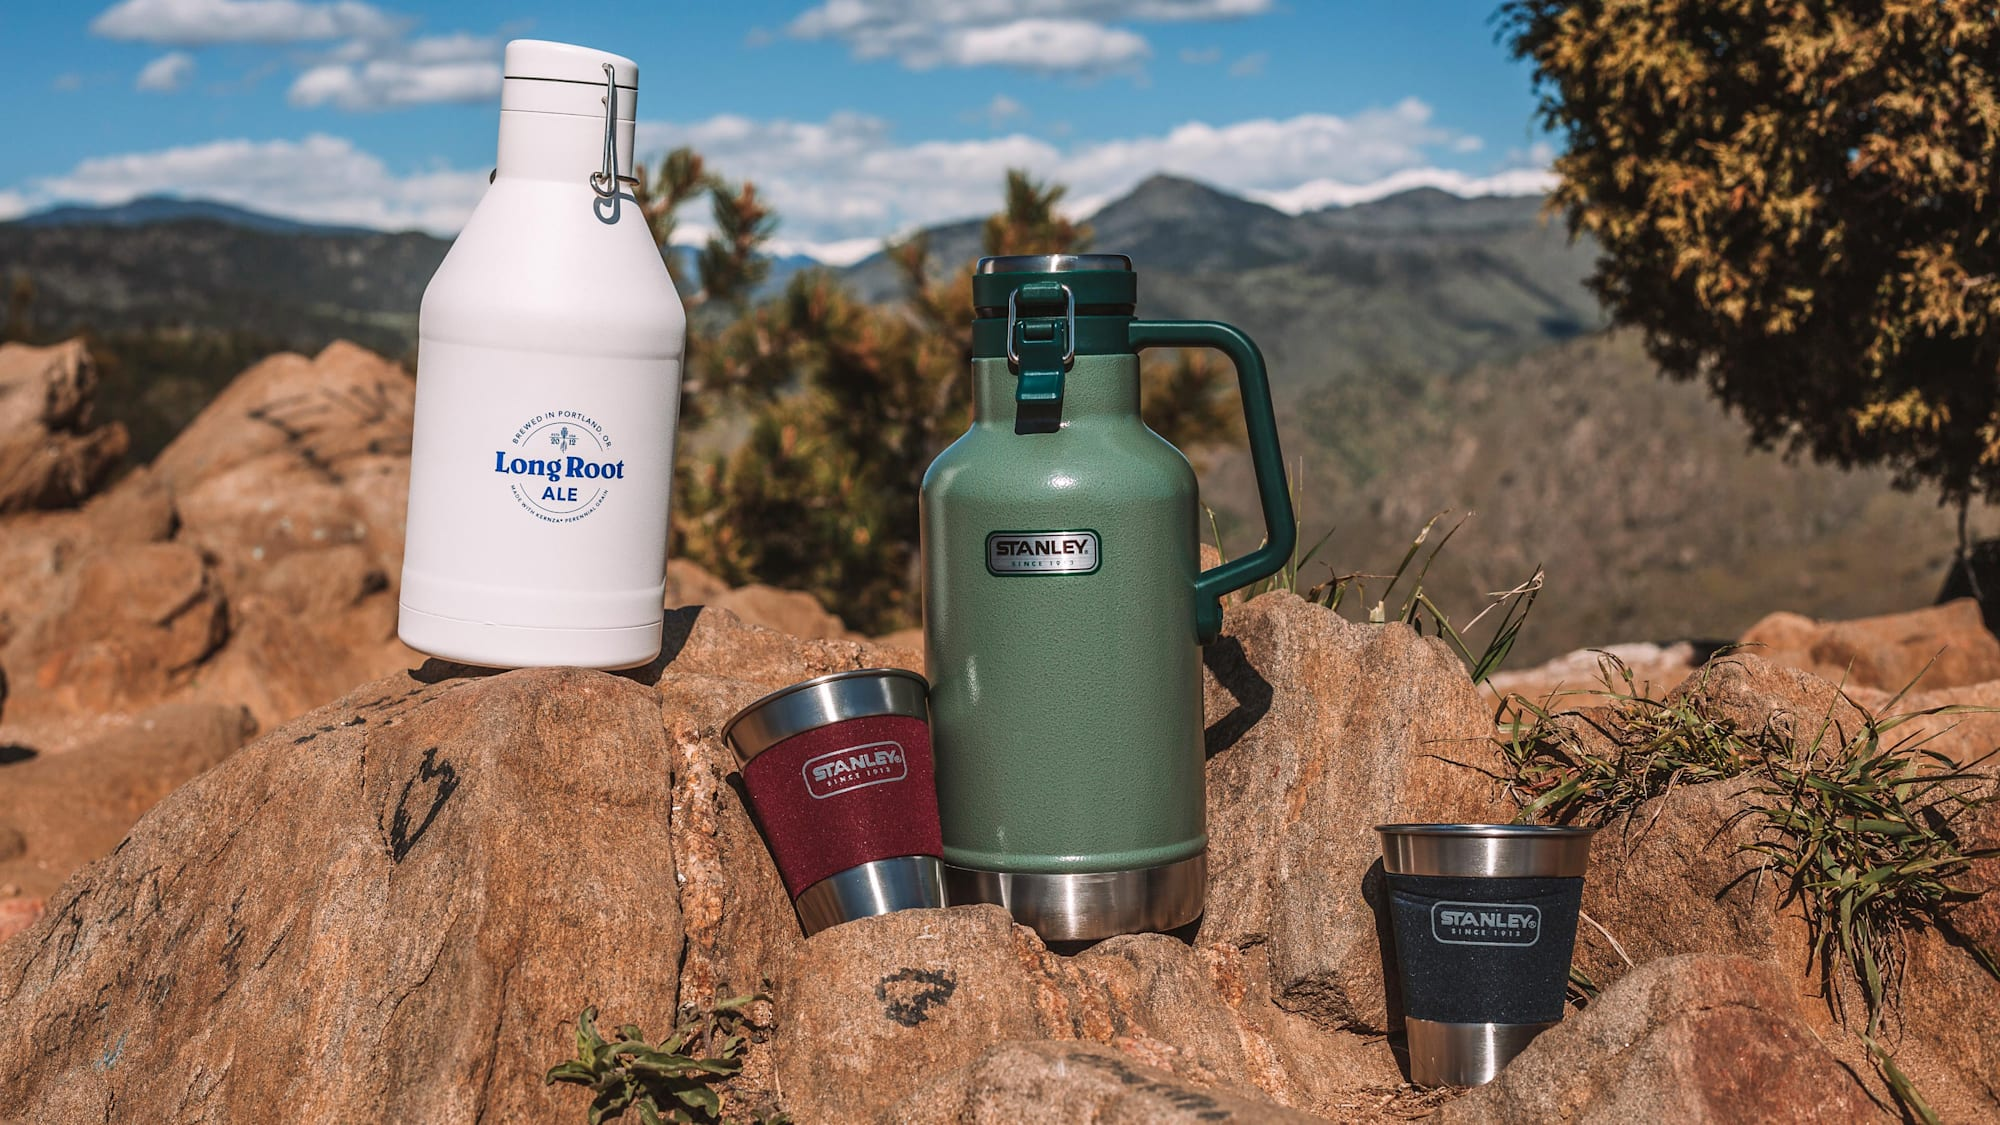 Summer Car Camping Gear - Growlers